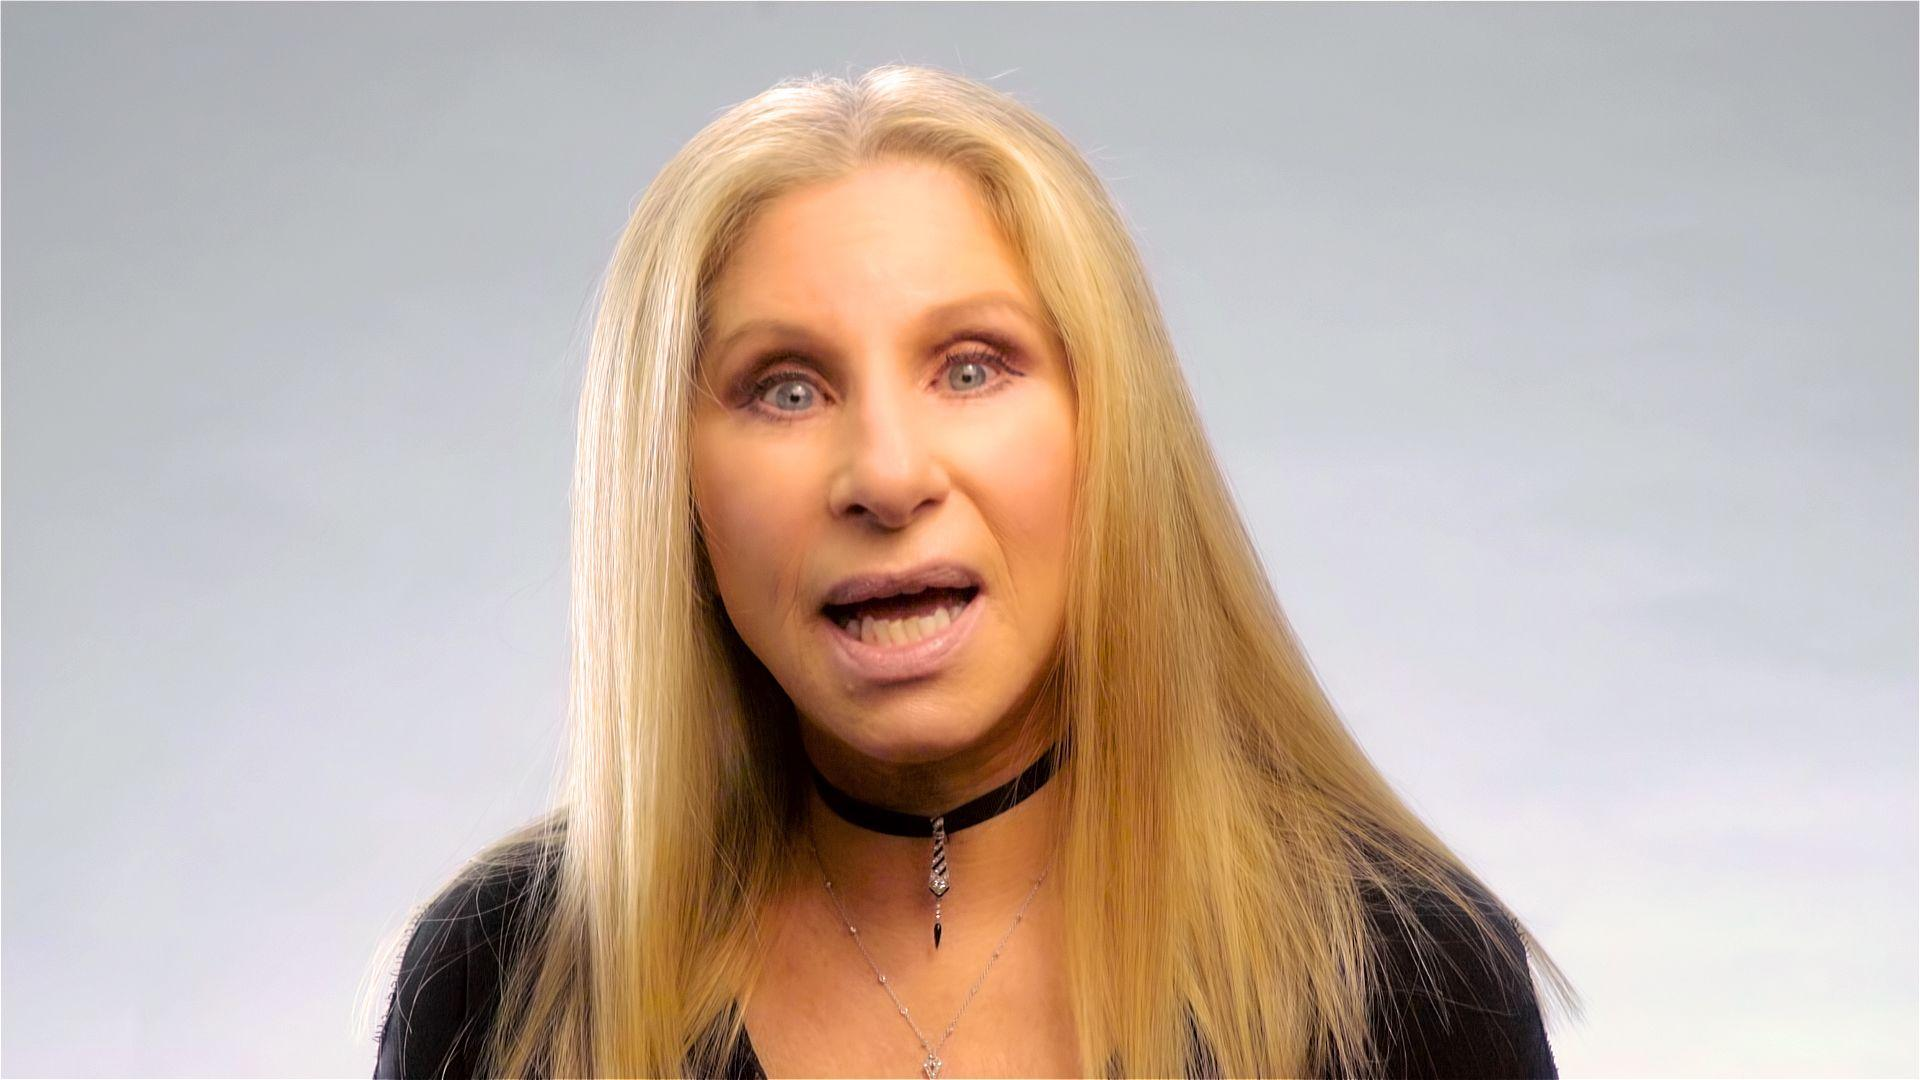 Barbra Streisand's Favorite Birthday Was So Beautiful She Fell Off A Chair